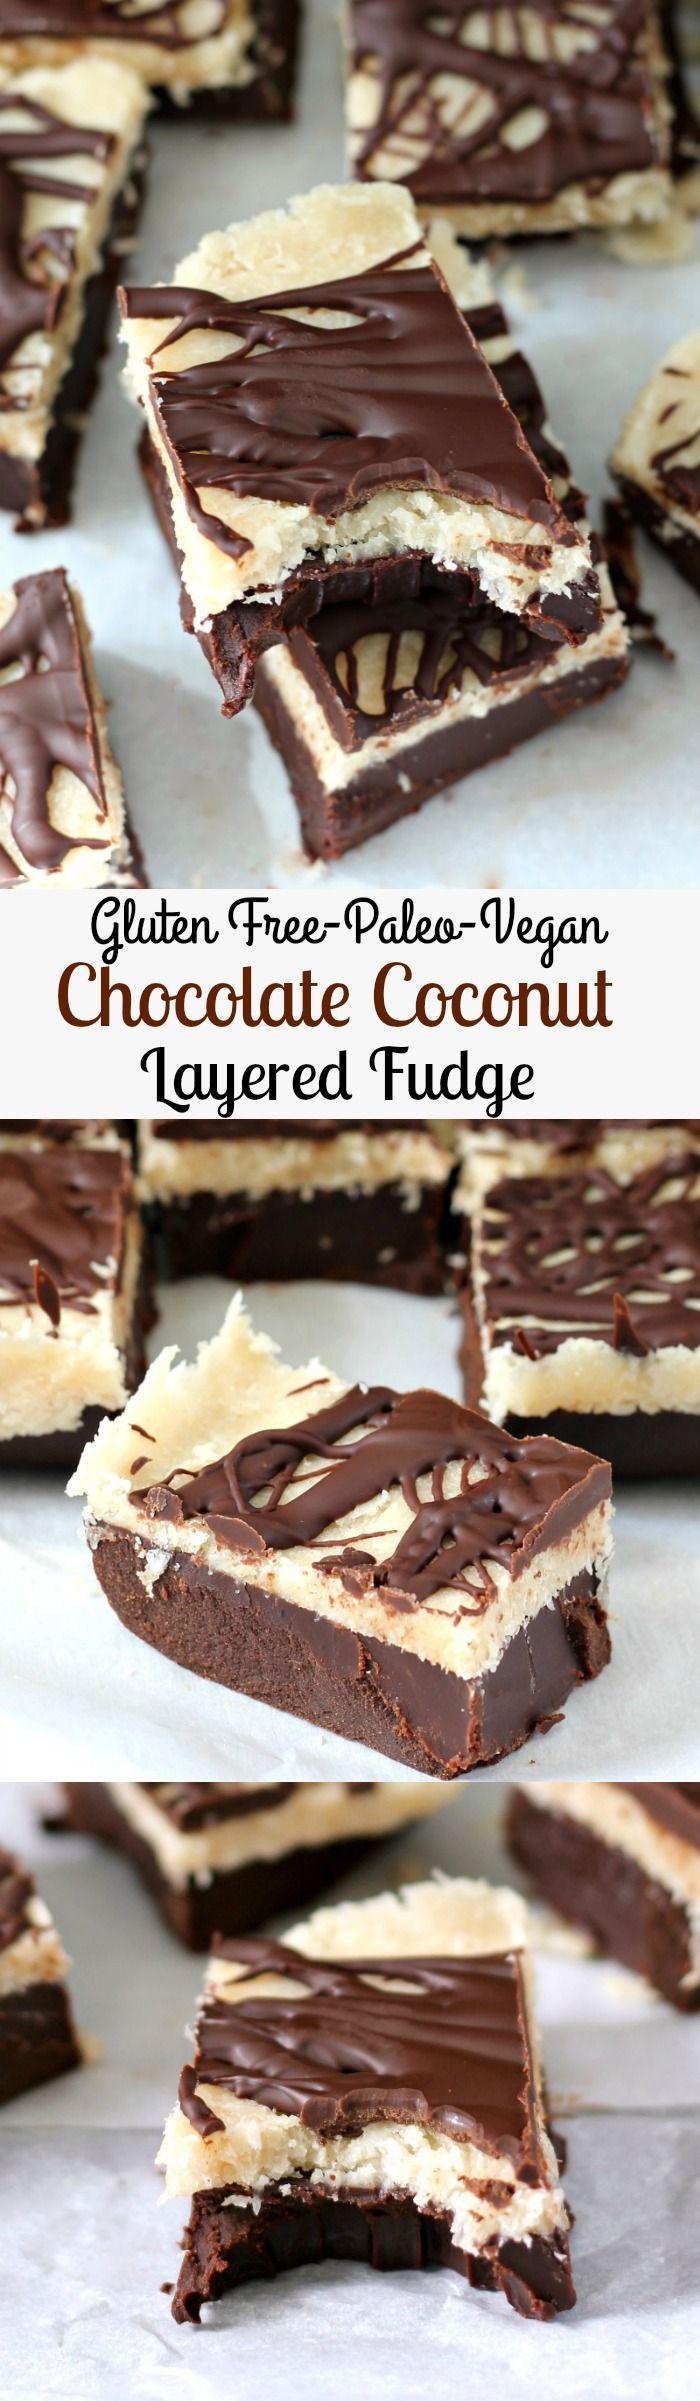 Layered Chocolate Coconut Fudge - Gluten free, paleo, vegan, nut free, no bake!